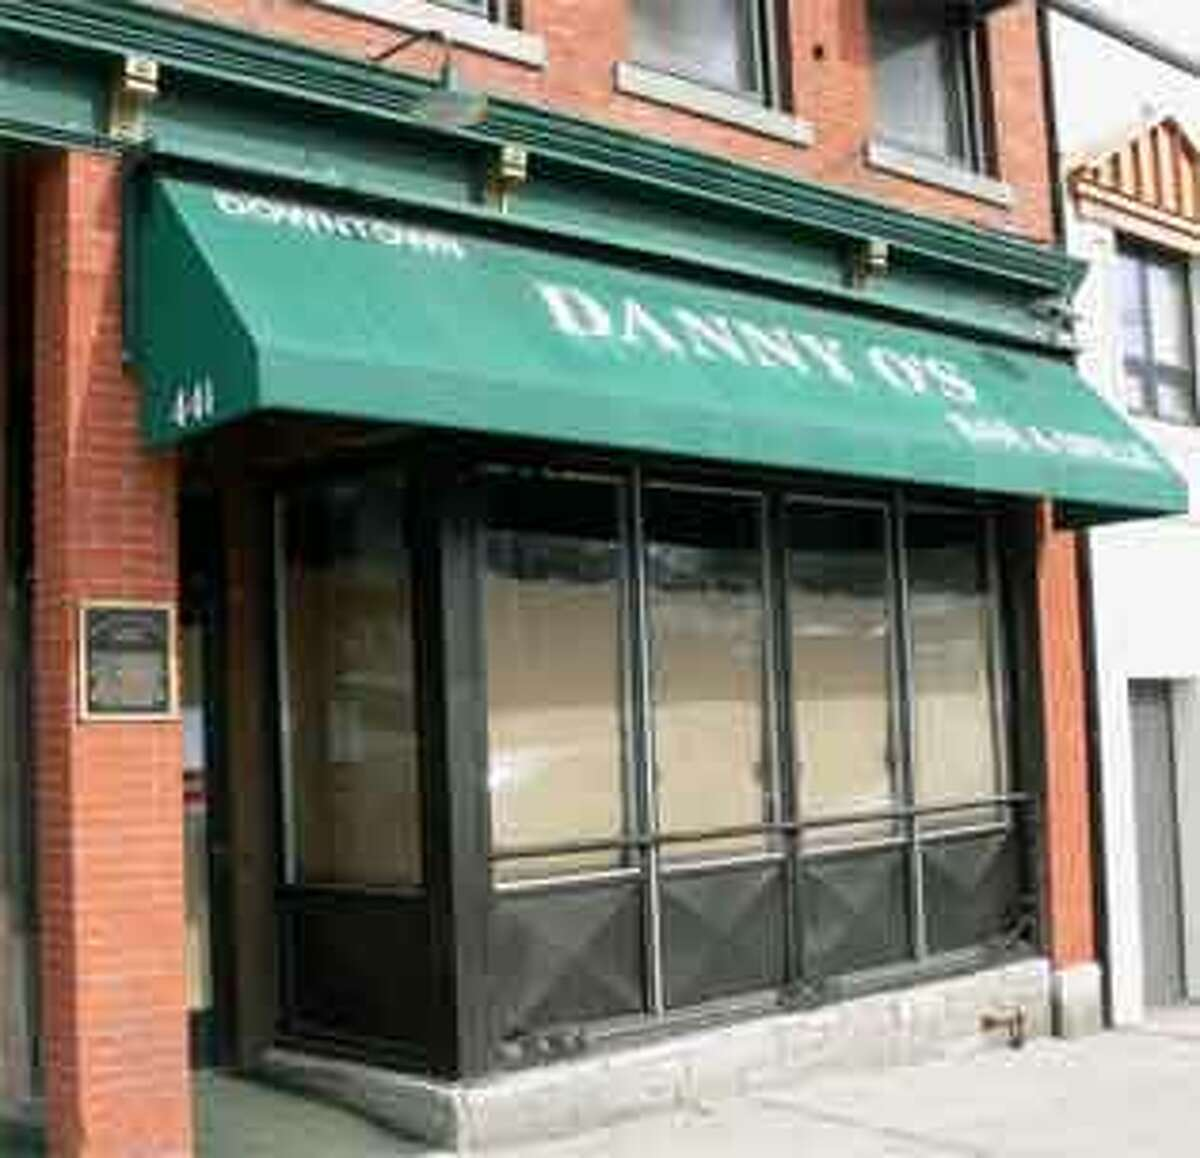 The front of the former Downtown Danny O's, which will be renovated and renamed before opening as a new bar and restaurant.